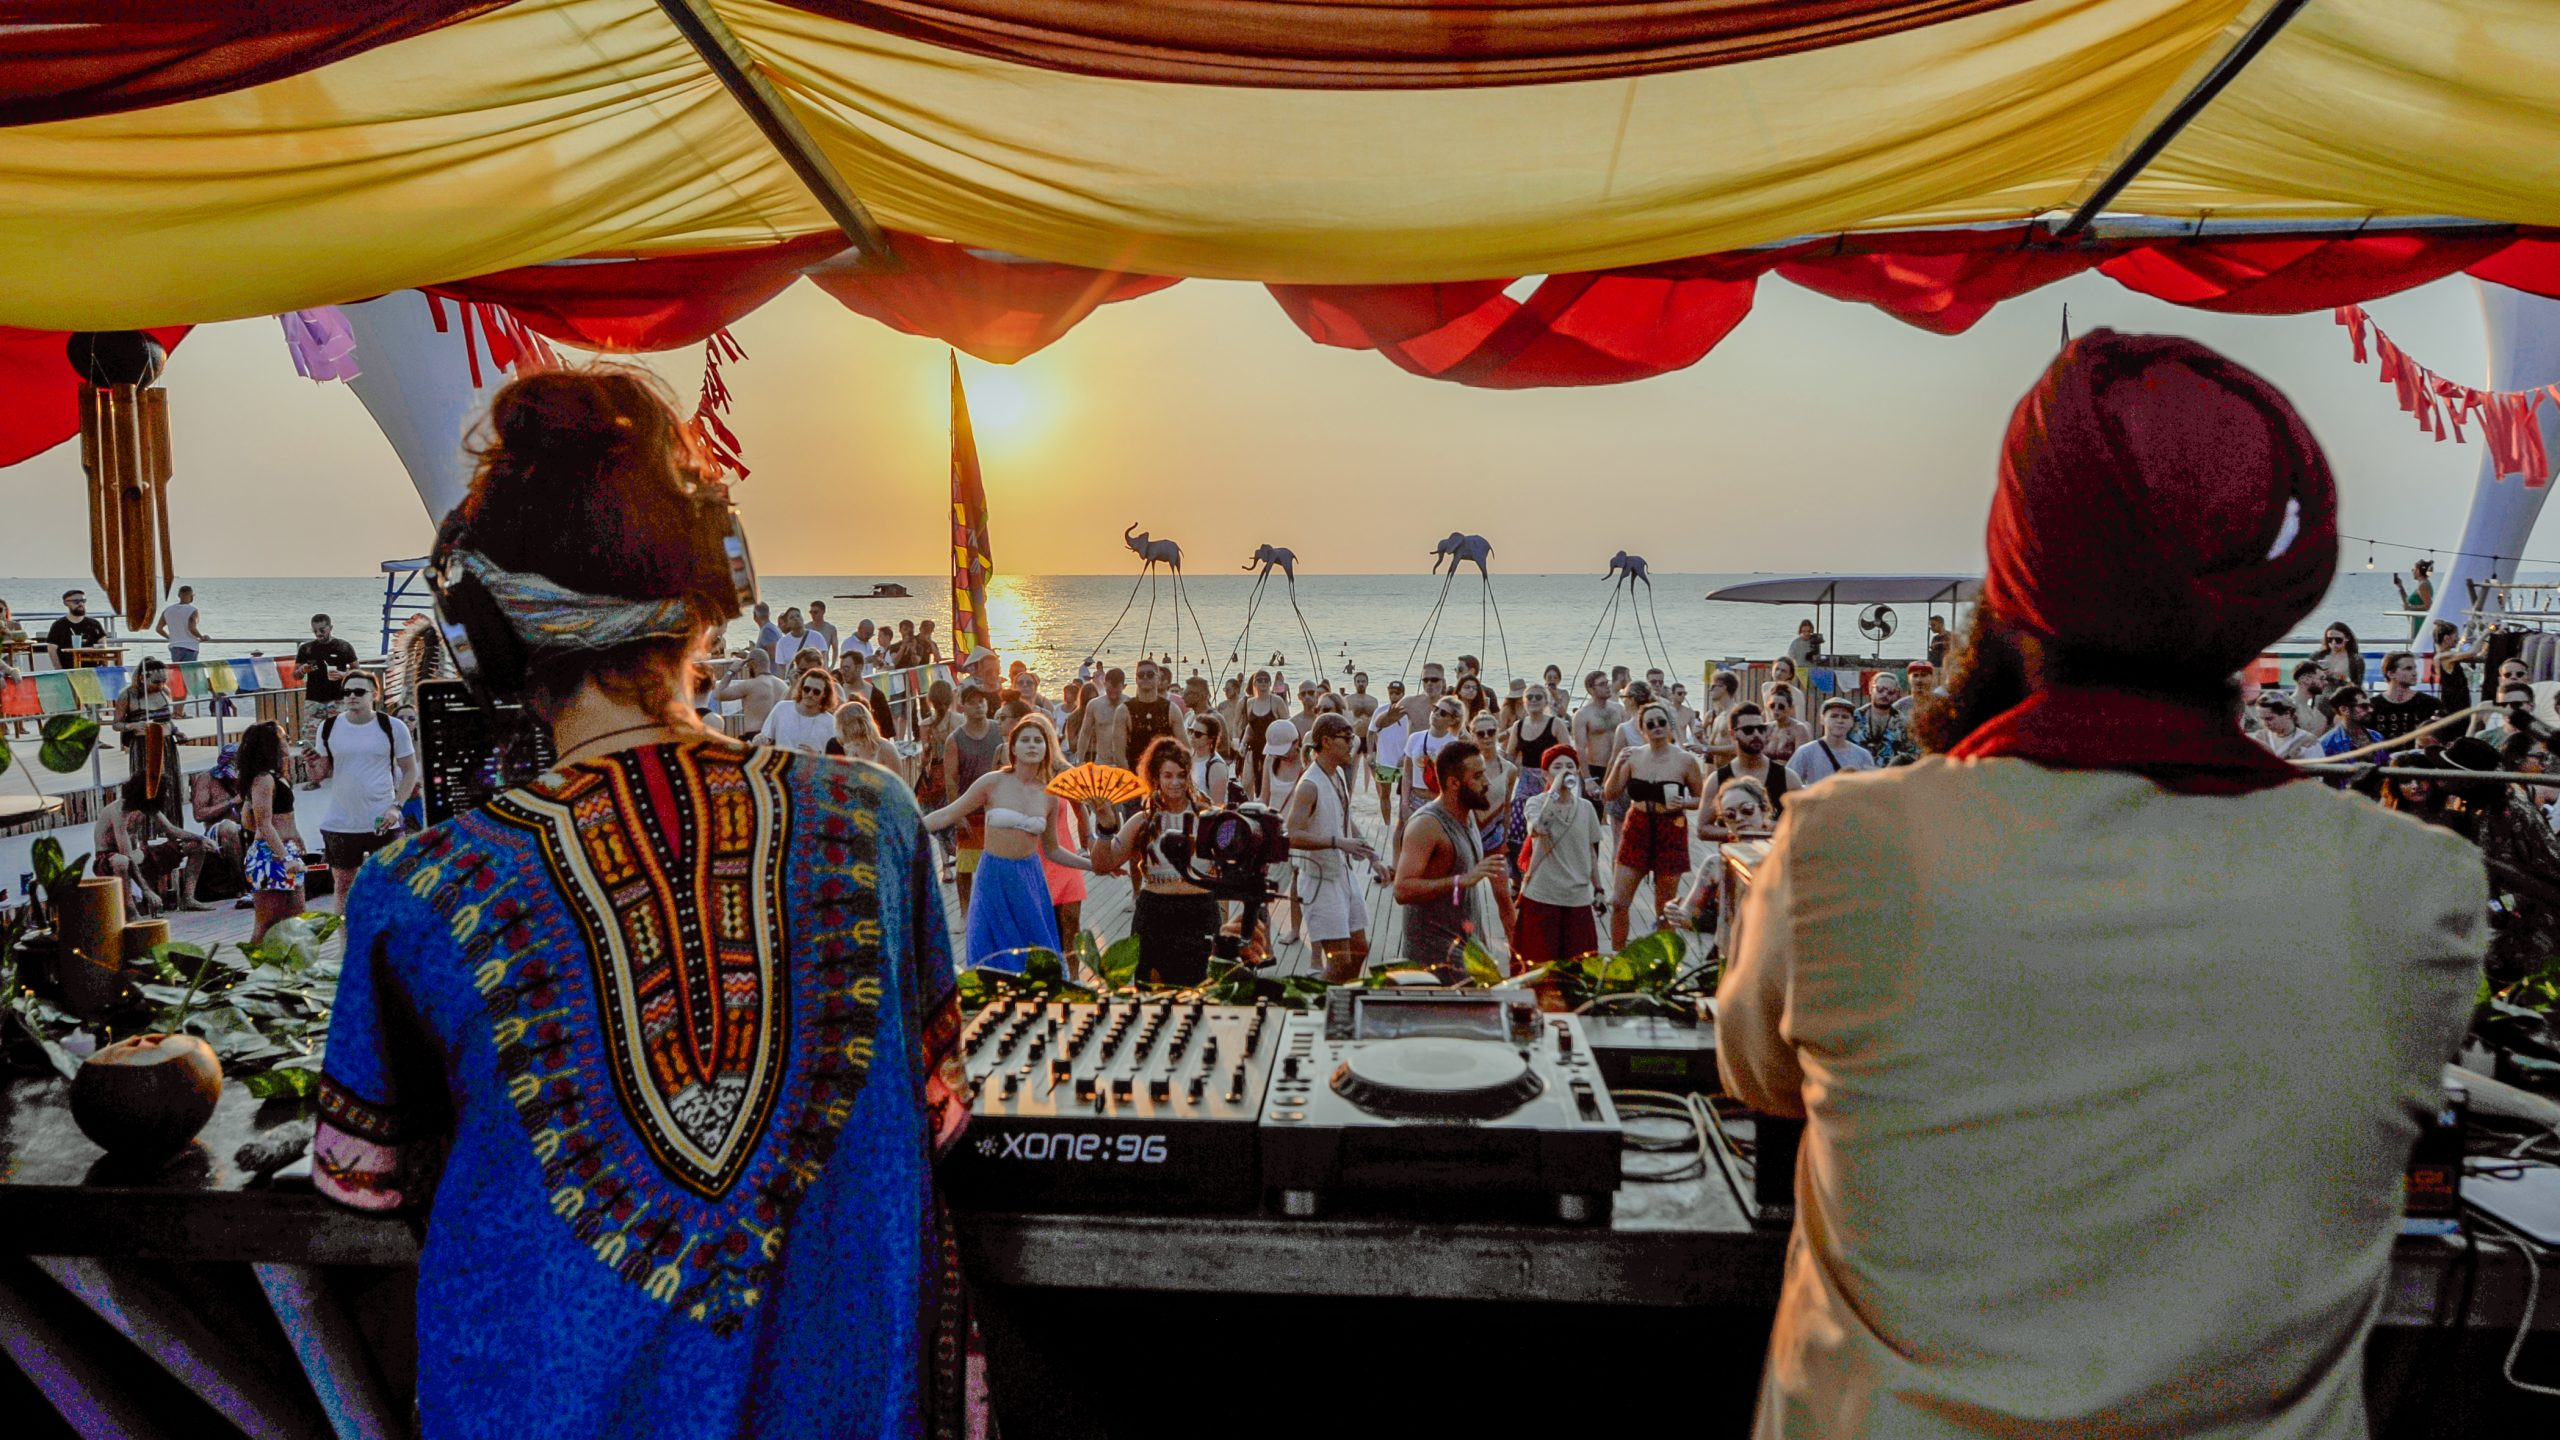 """""""While the impressive line-up landed Epizode on global 'festivals to watch' lists, it's the organizers' decision to embrace environmentally-friendly initiatives that earned it """"the festival with a conscience"""" moniker.""""   Source: Epizode."""